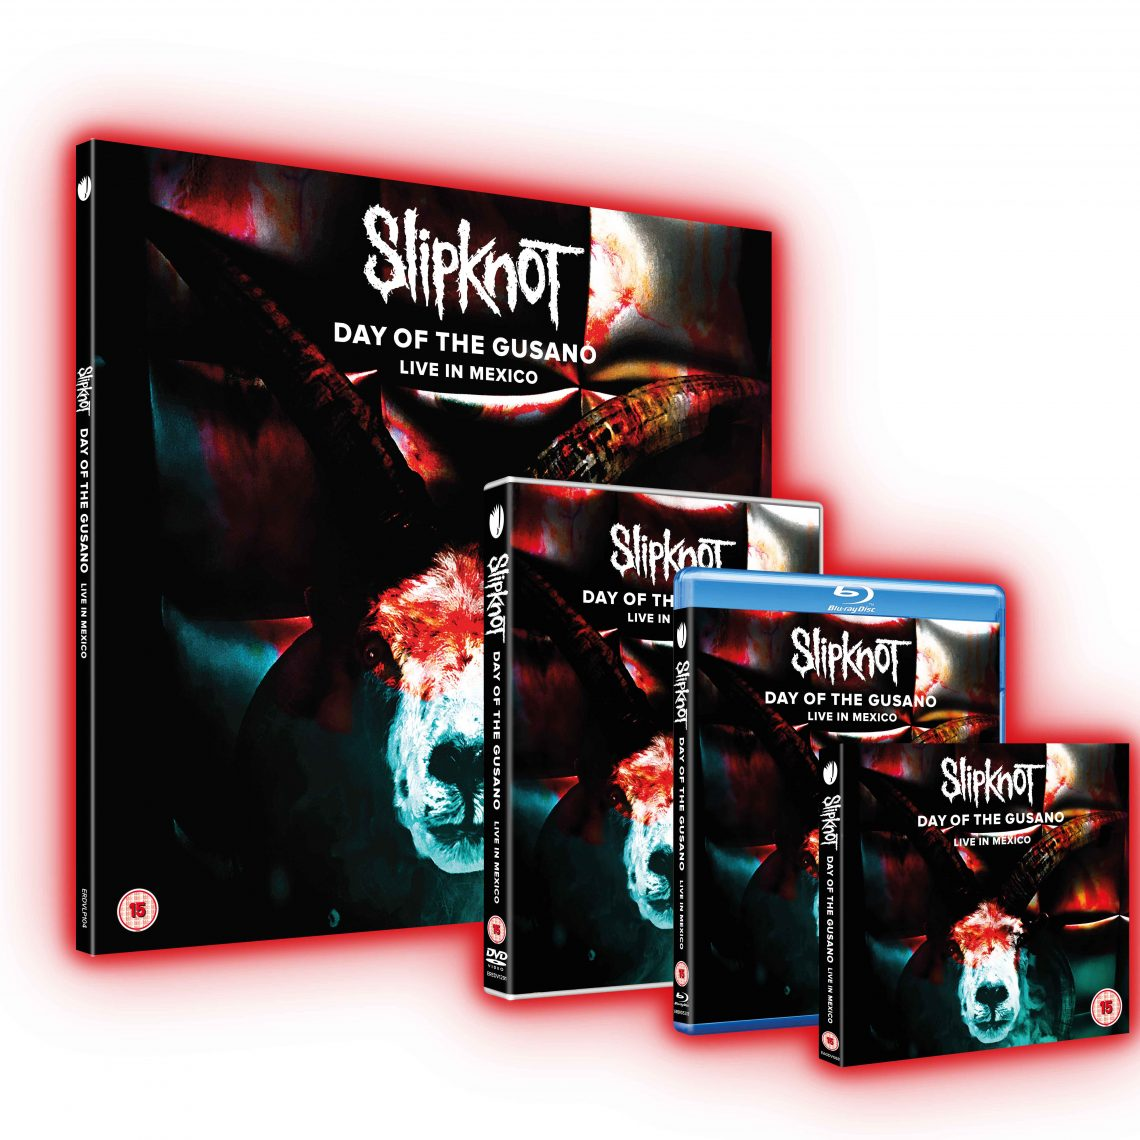 SLIPKNOT reveal 'Day of the Gusano' DVD, inc. deluxe packages